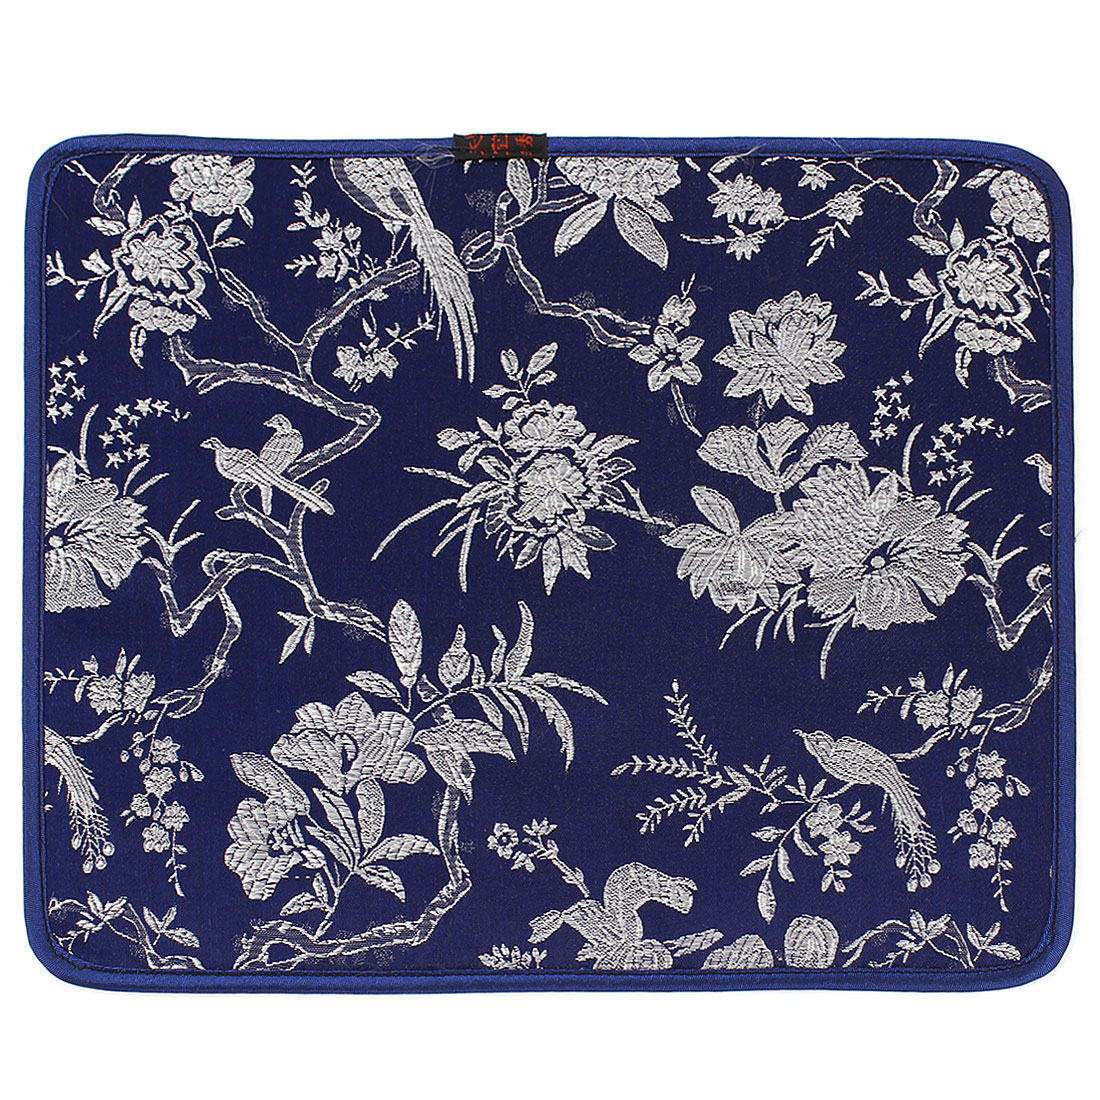 Dark Blue Embroidery Floral Pattern Nonslip Silicone Desktop Computer Mouse Pad Mat